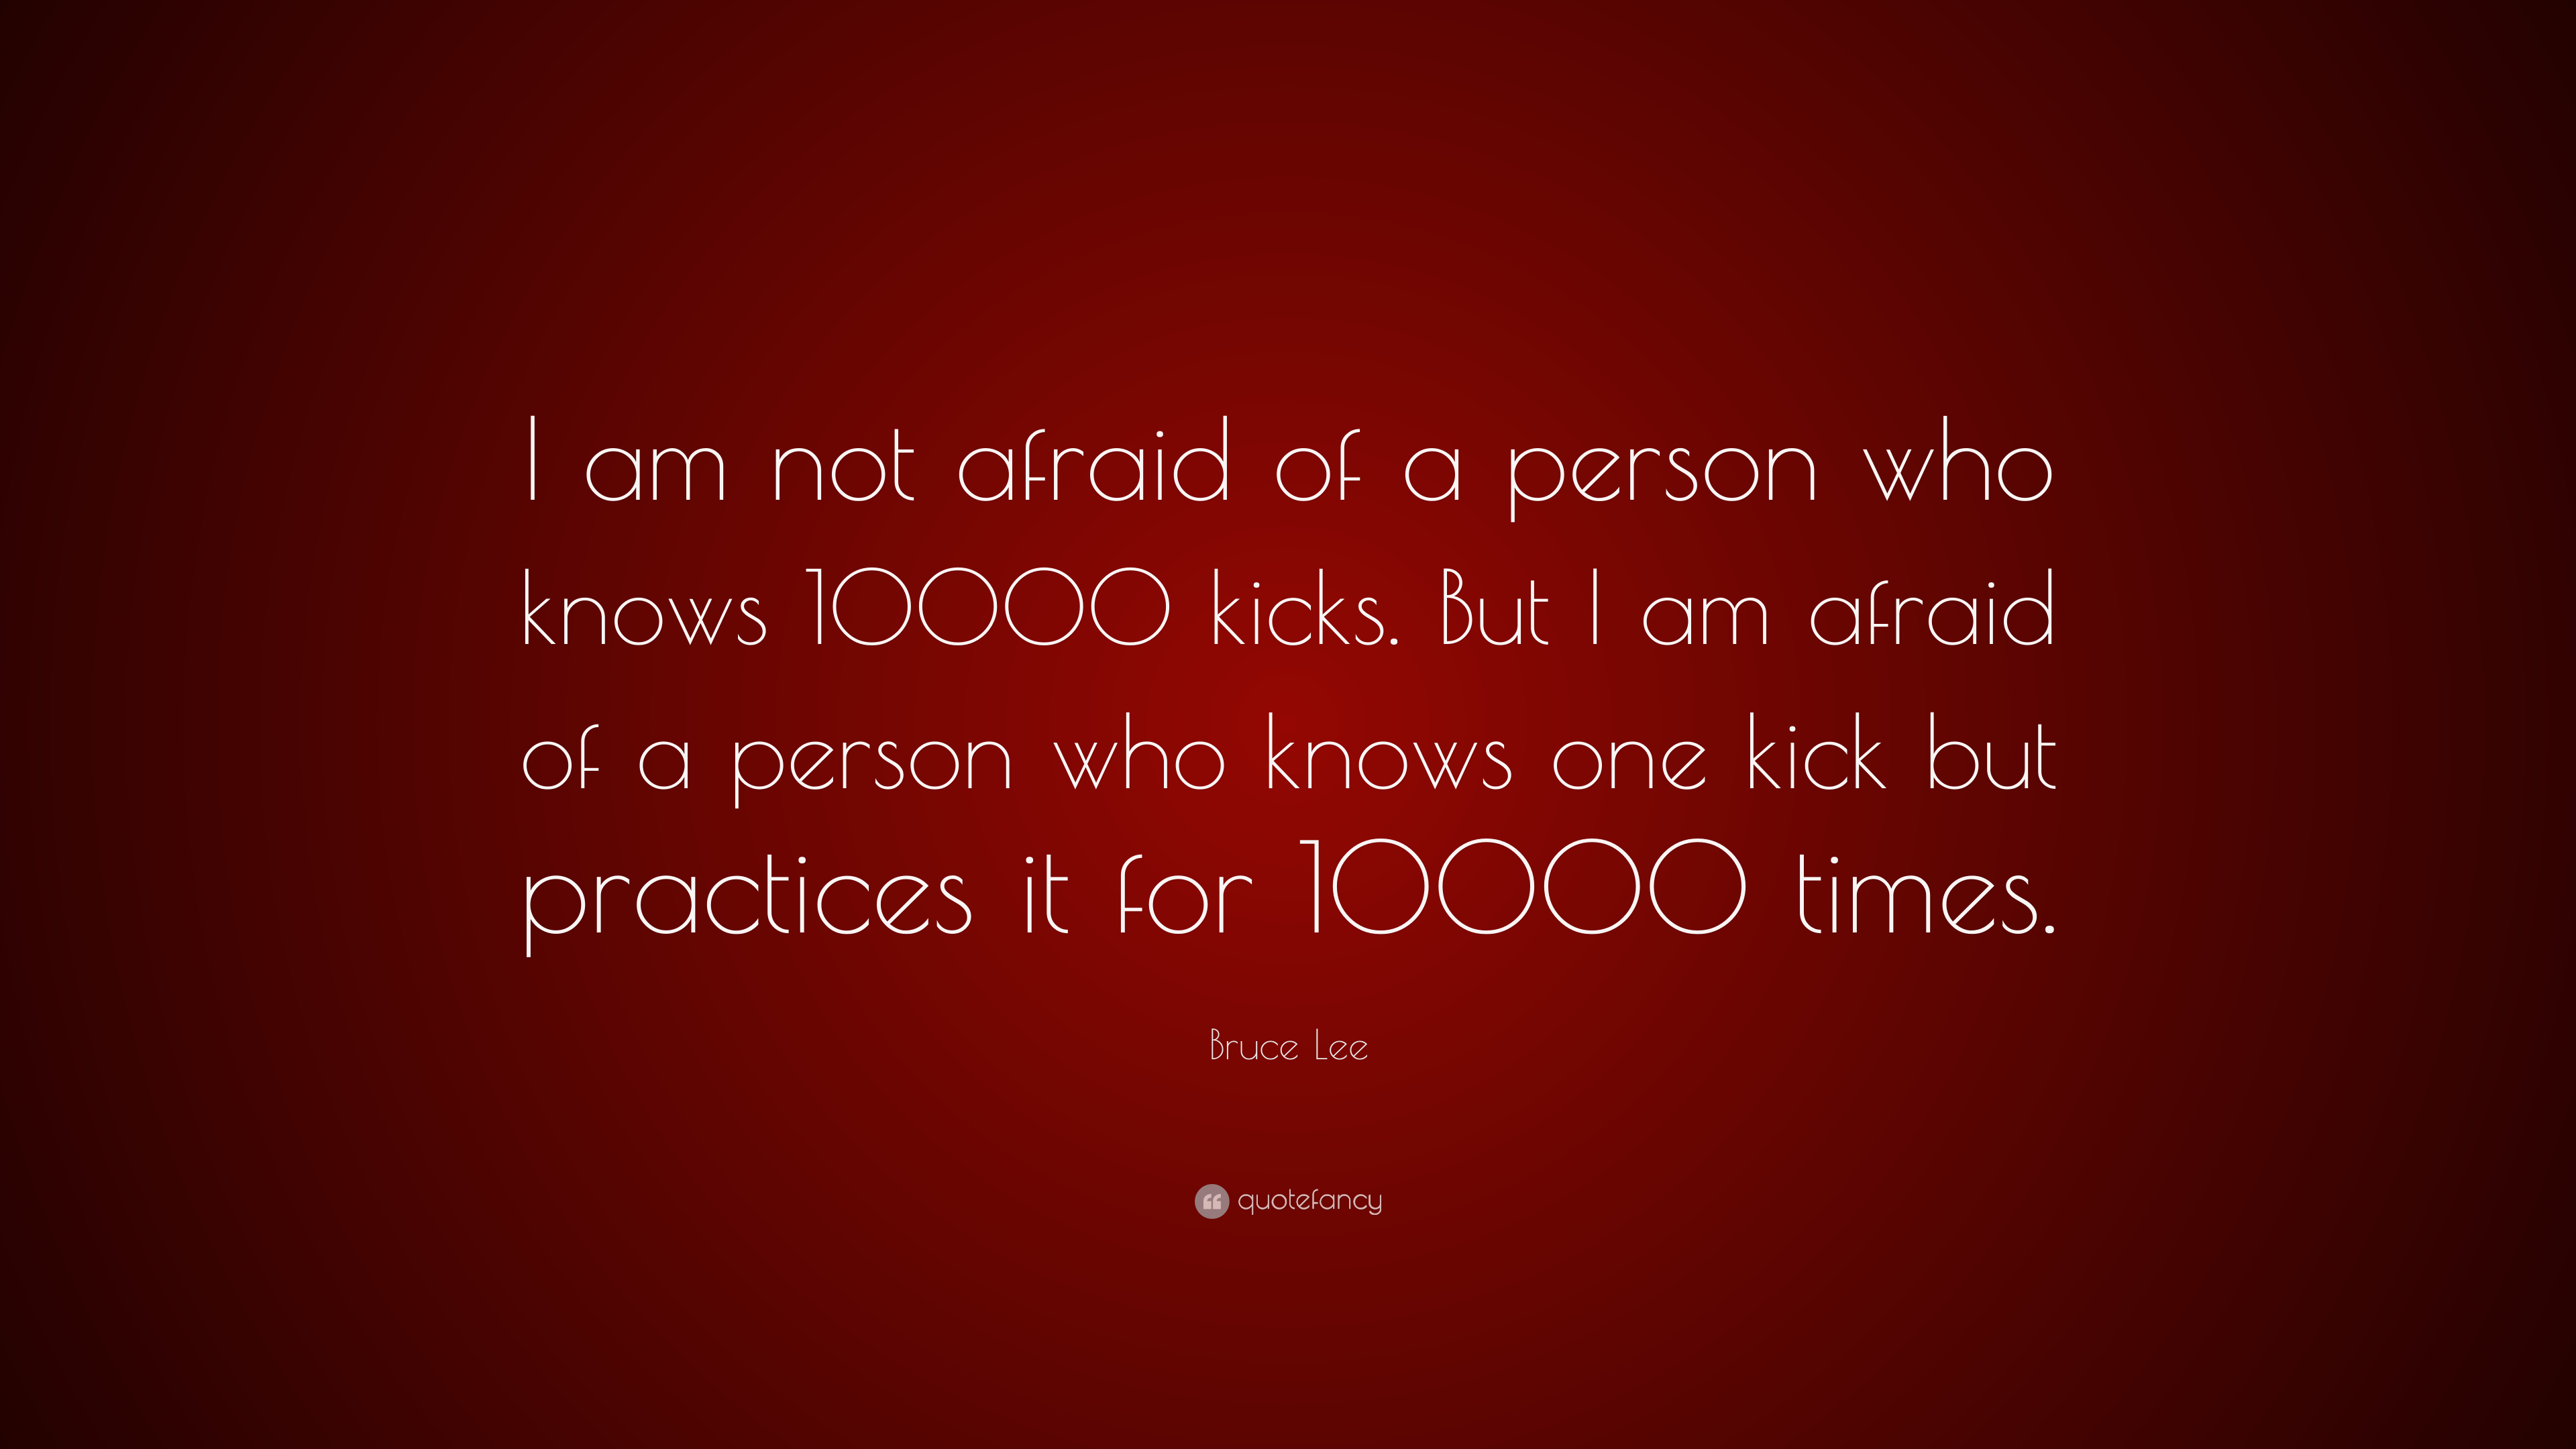 Bruce Lee Quote I Am Not Afraid Of A Person Who Knows 10000 Kicks